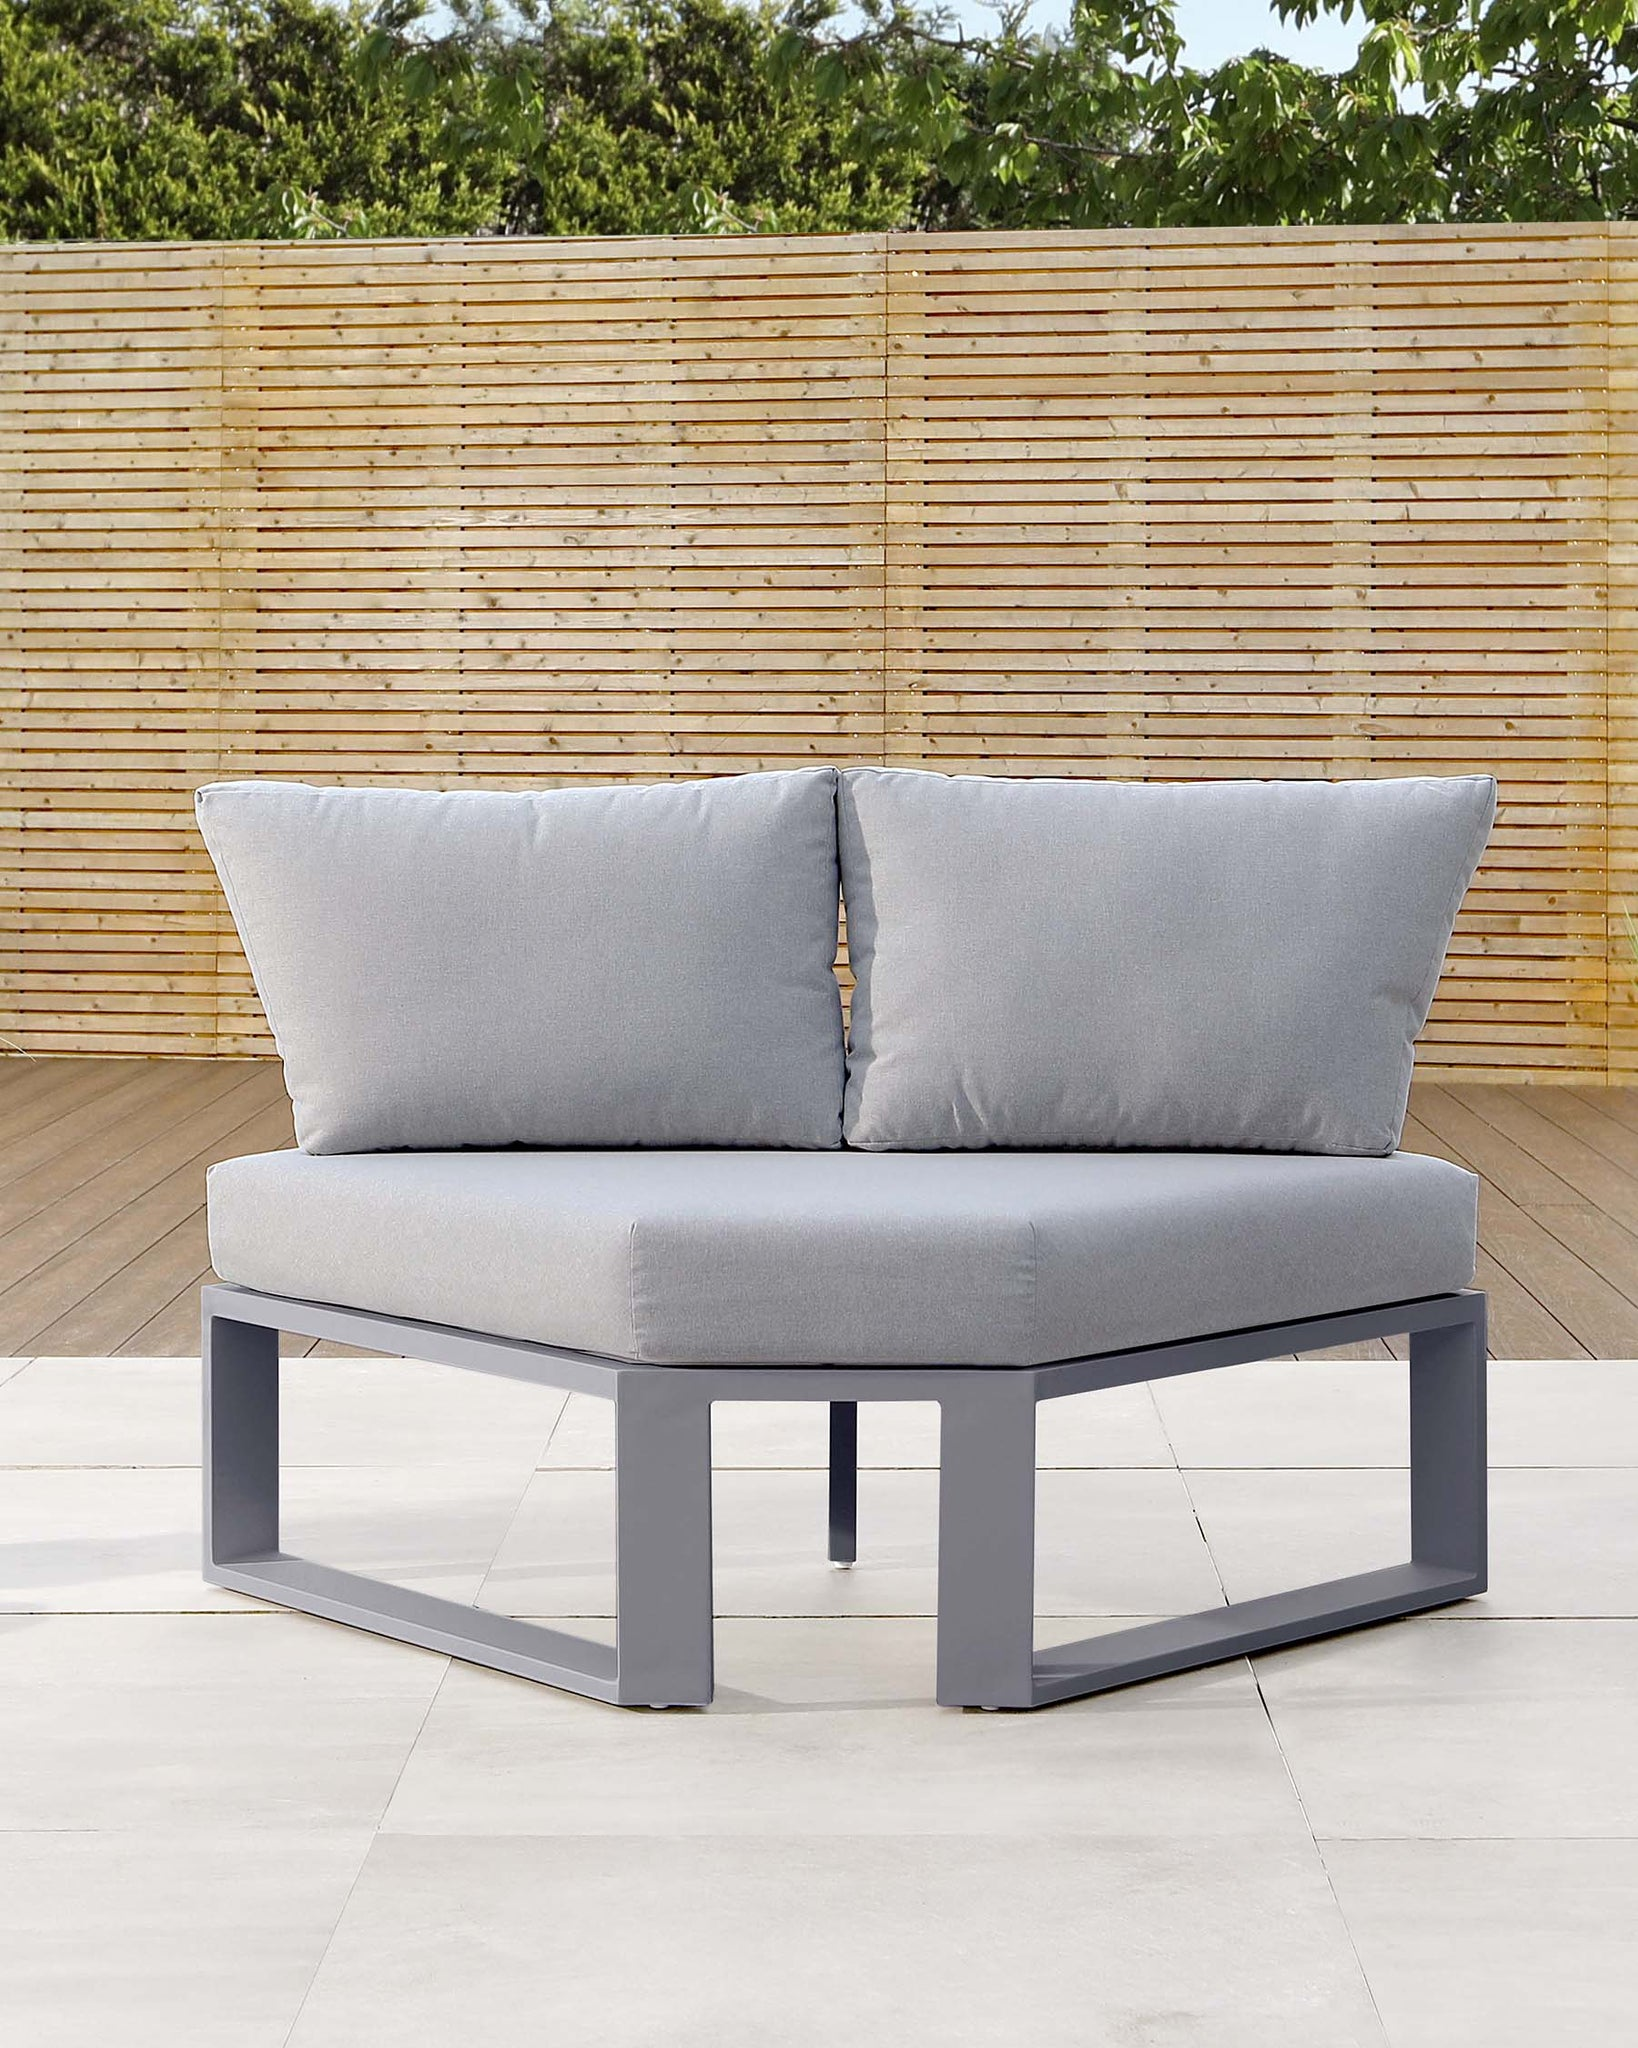 Savannah Grey Garden Large Corner Seat